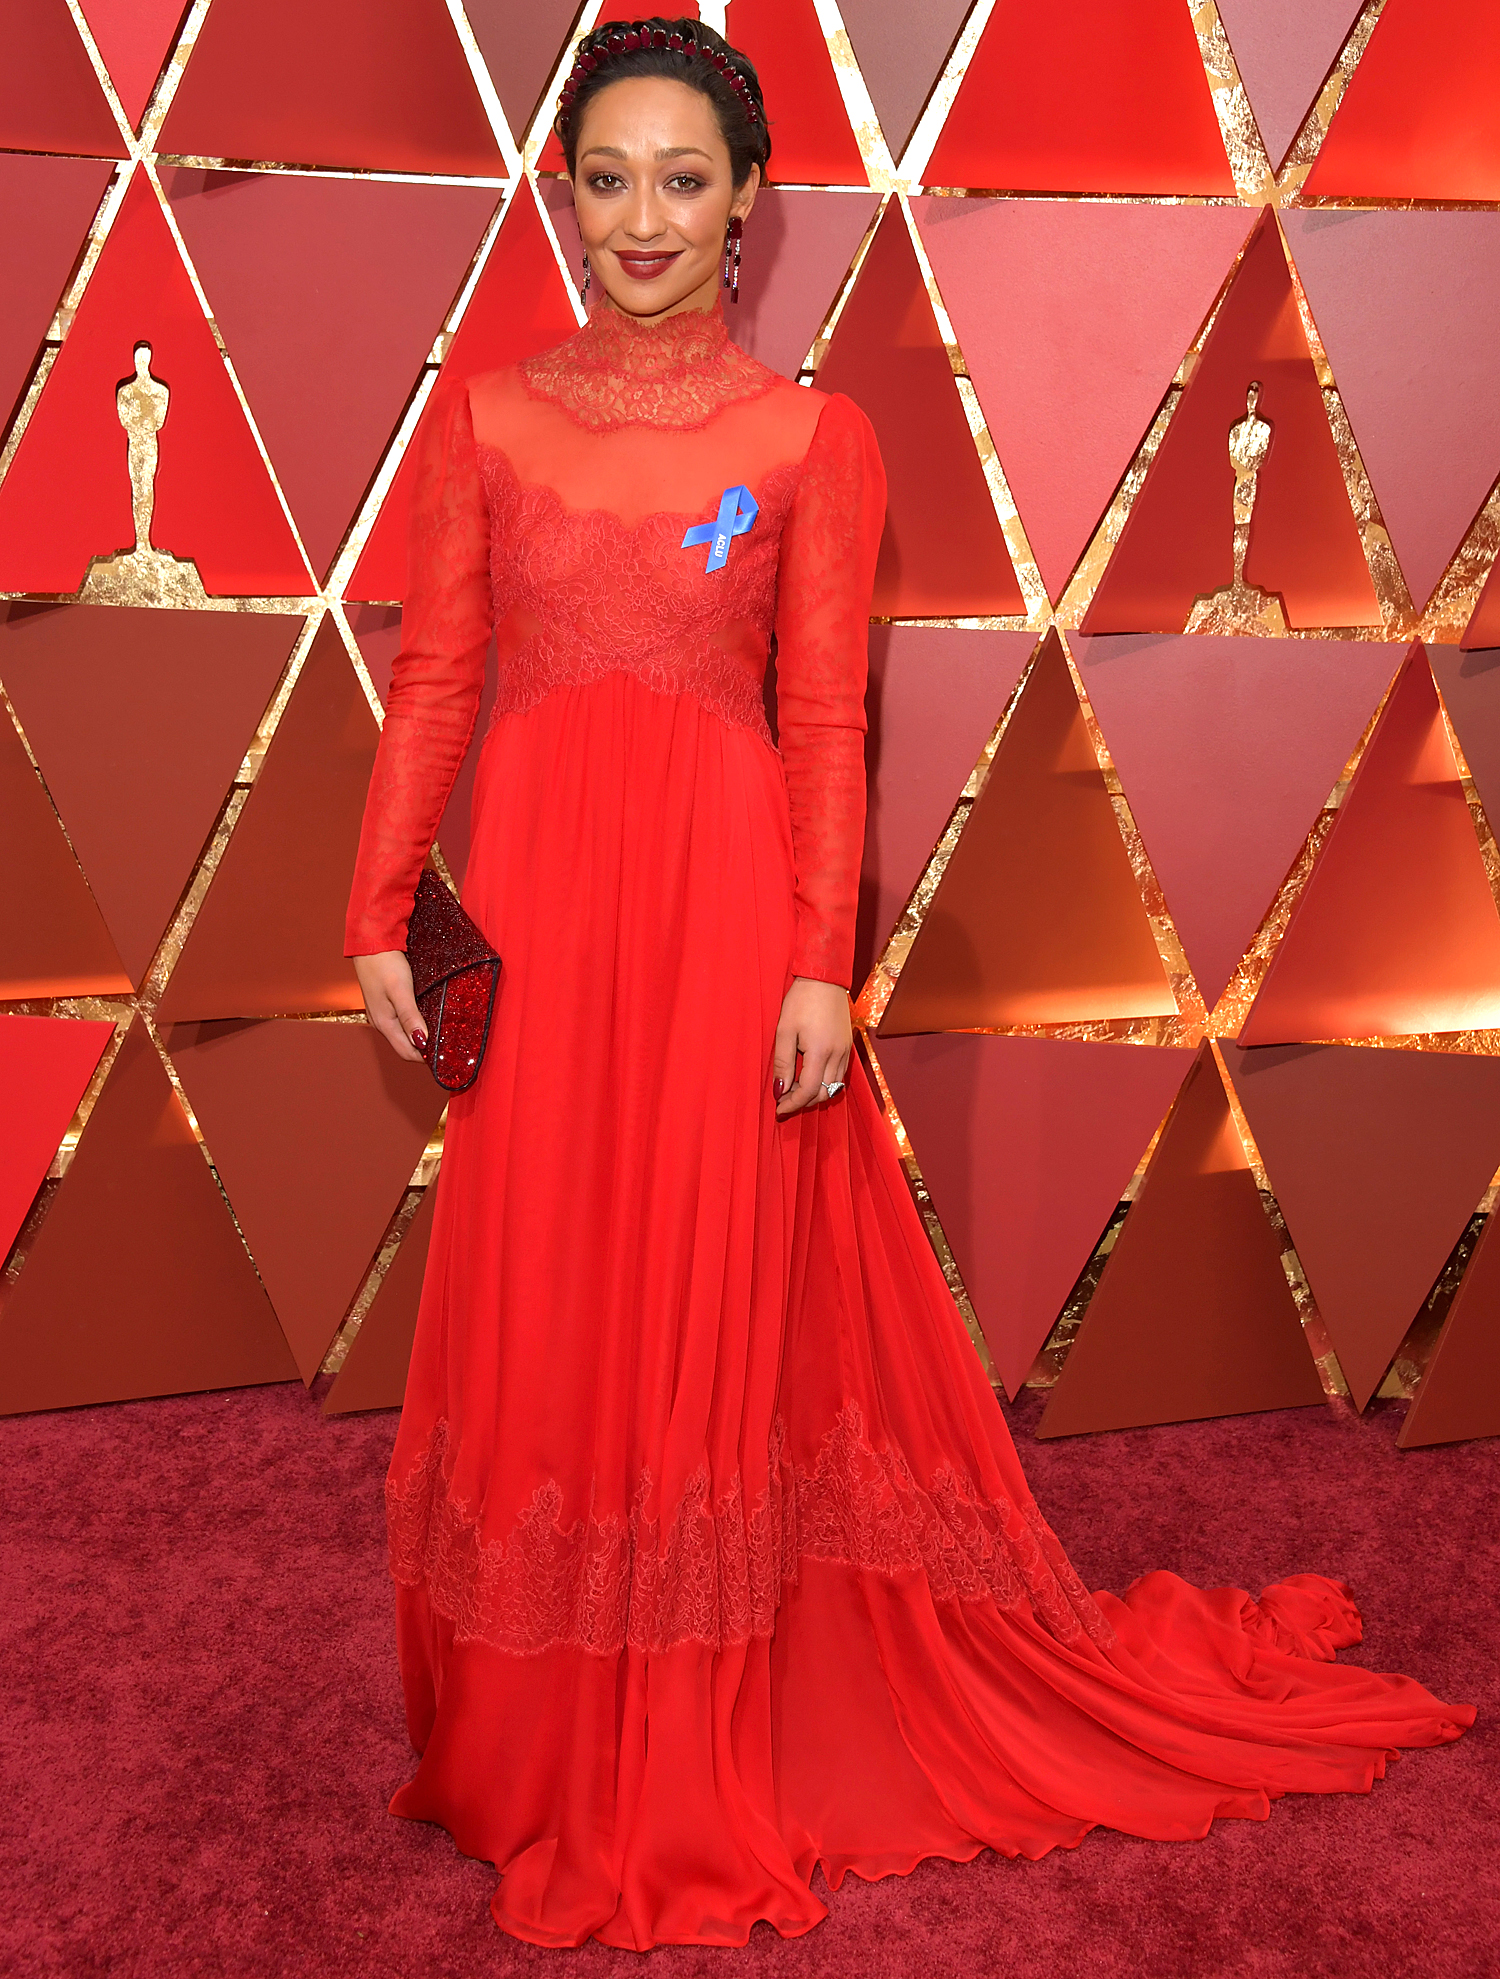 Ruth Negga attends the 89th Annual Academy Awards